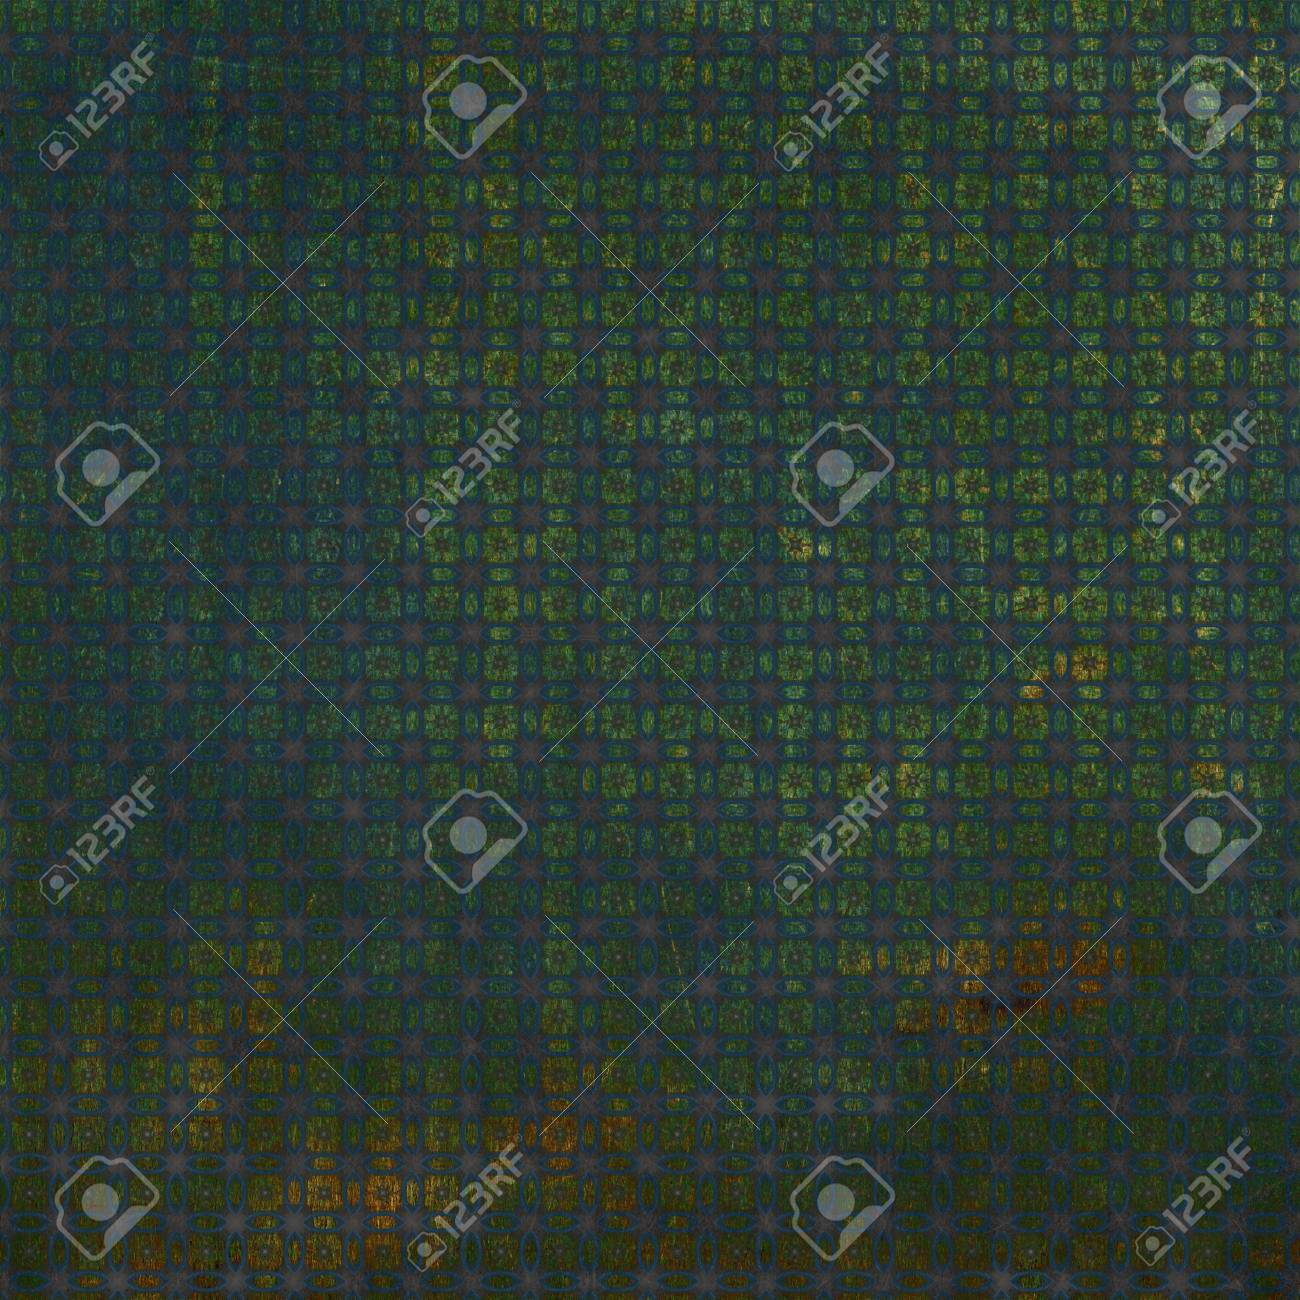 the vintage shabby background with classy patterns Stock Photo - 8473349